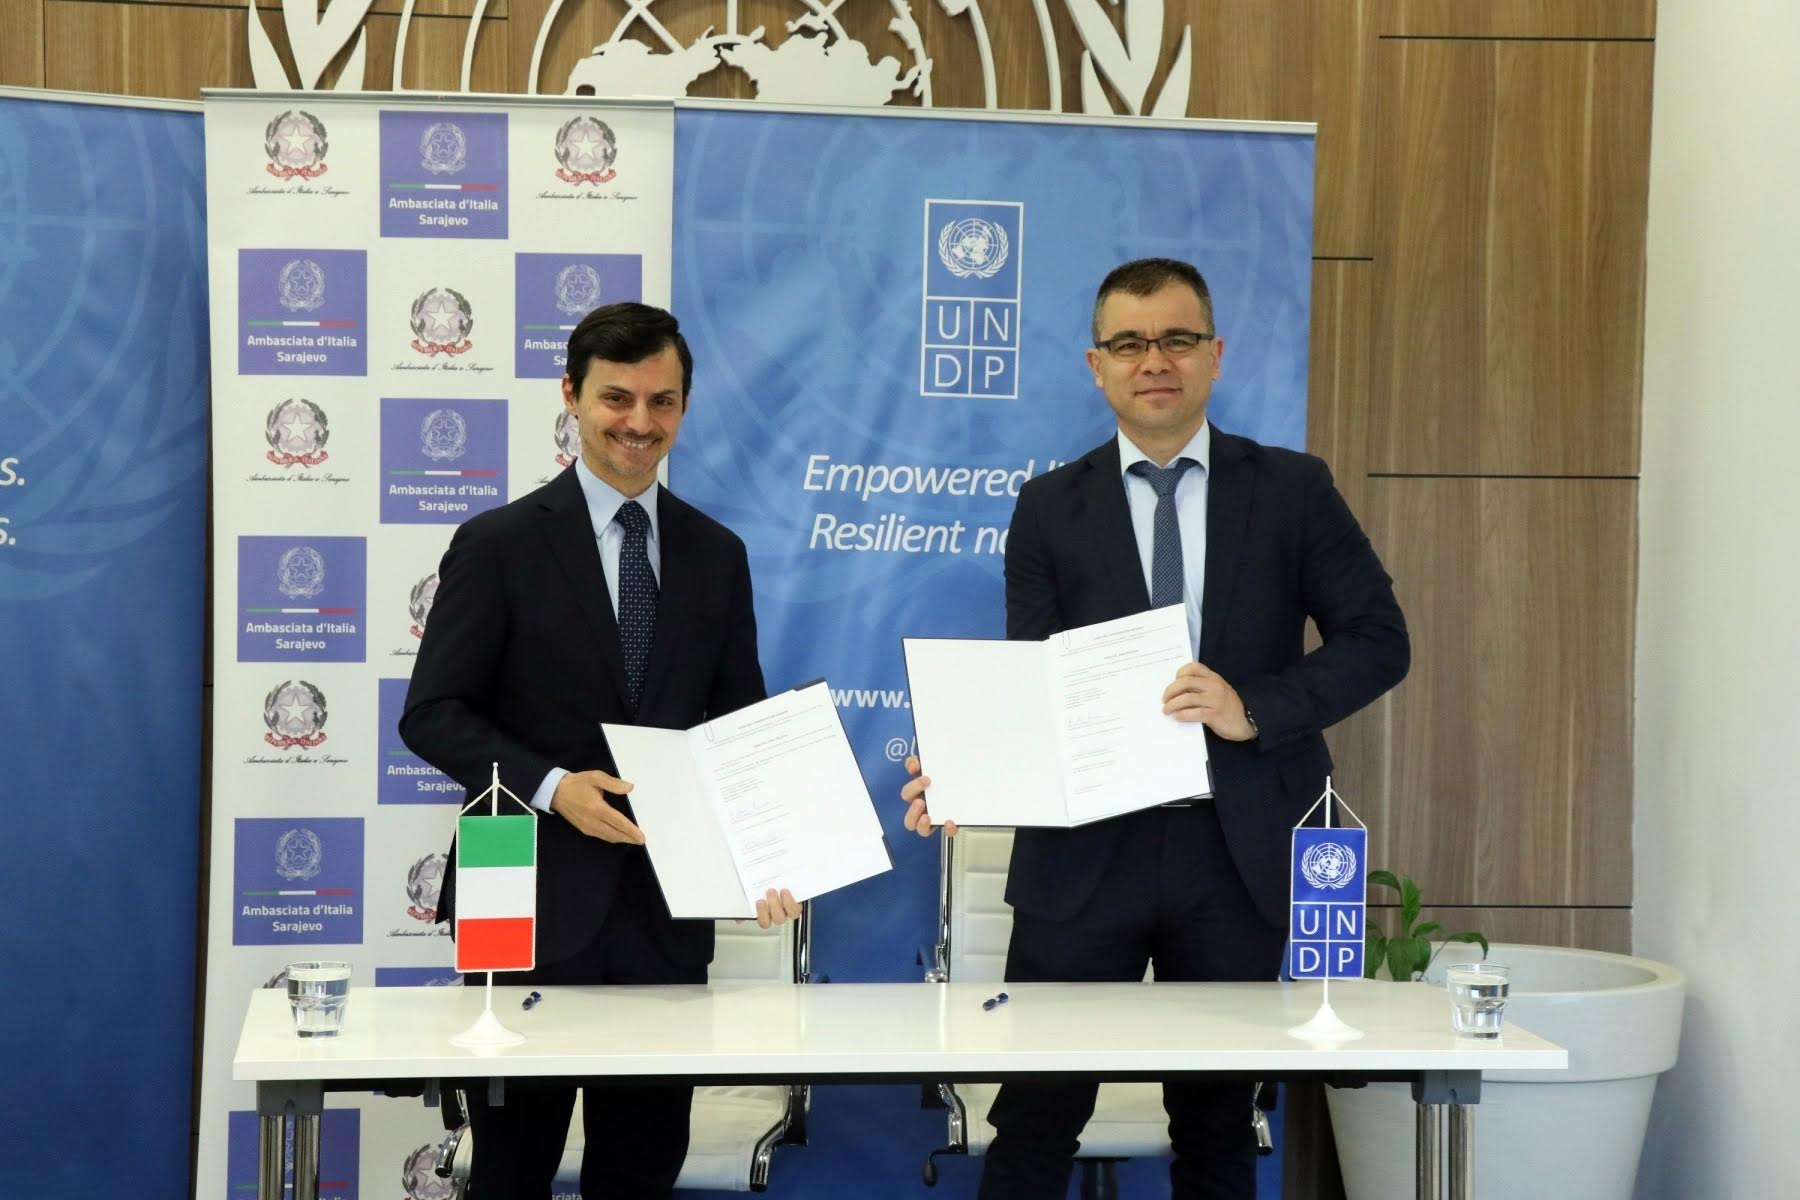 Italy supports the exquisite Via Dinarica and BiH's tourism potential